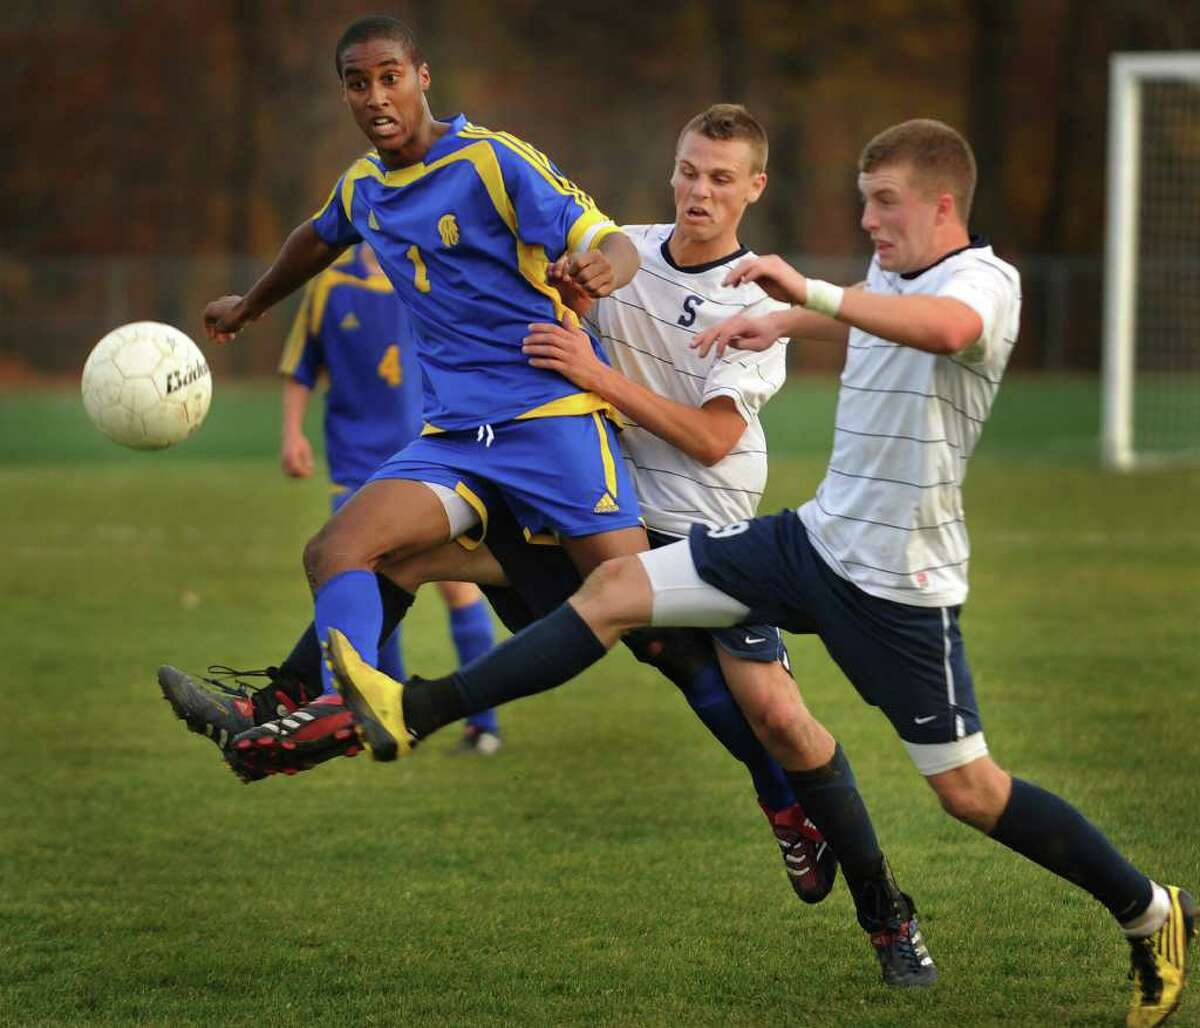 From left; Simsbury's Blake Mercer,Staples' Steven Denowitz, and Staples' Brendan Lesch play an incoming ball during the Wreckers' 1-0 victory in the Class LL quarterfinals at Staples High School in Westport on Monday, November 15, 2010.